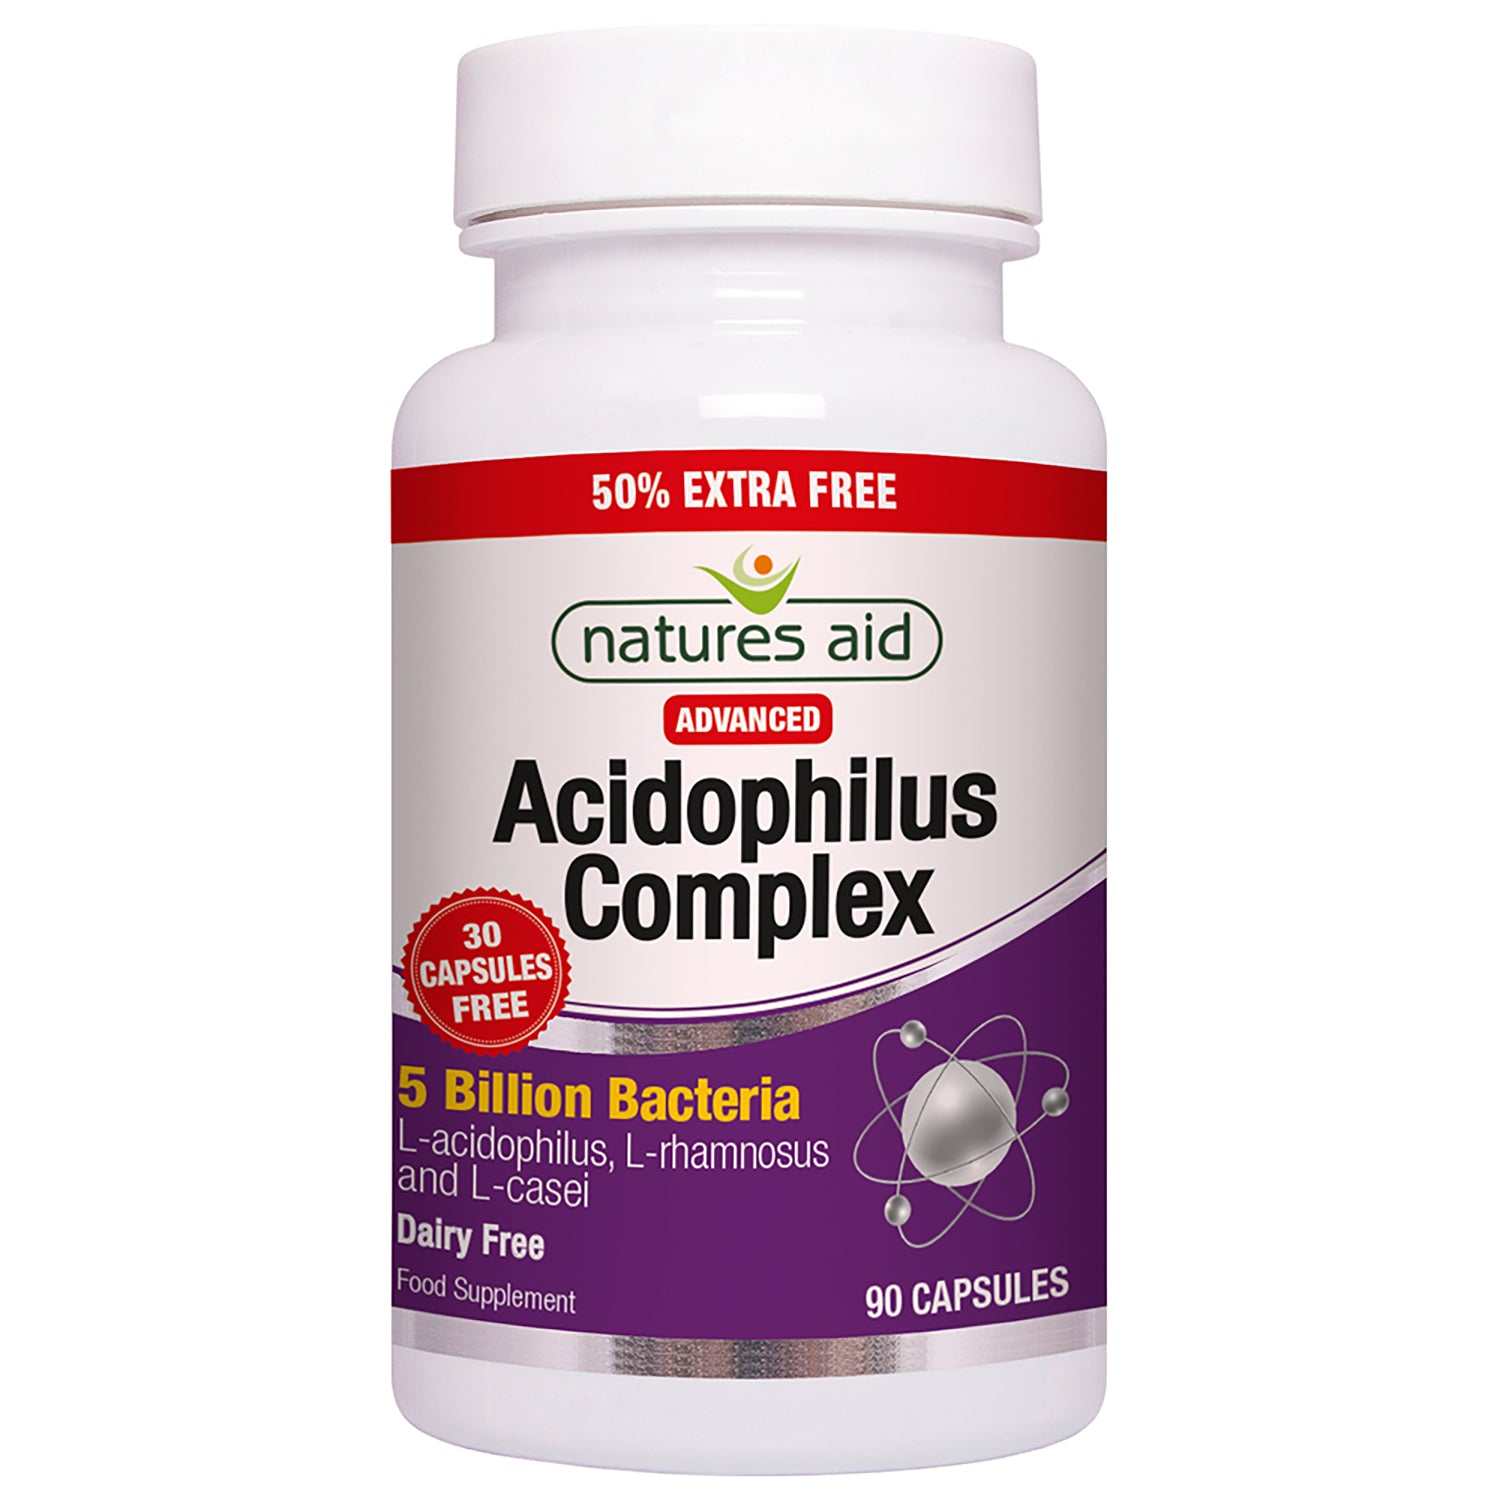 Acidophilus Complex (5 Billion Bacteria)